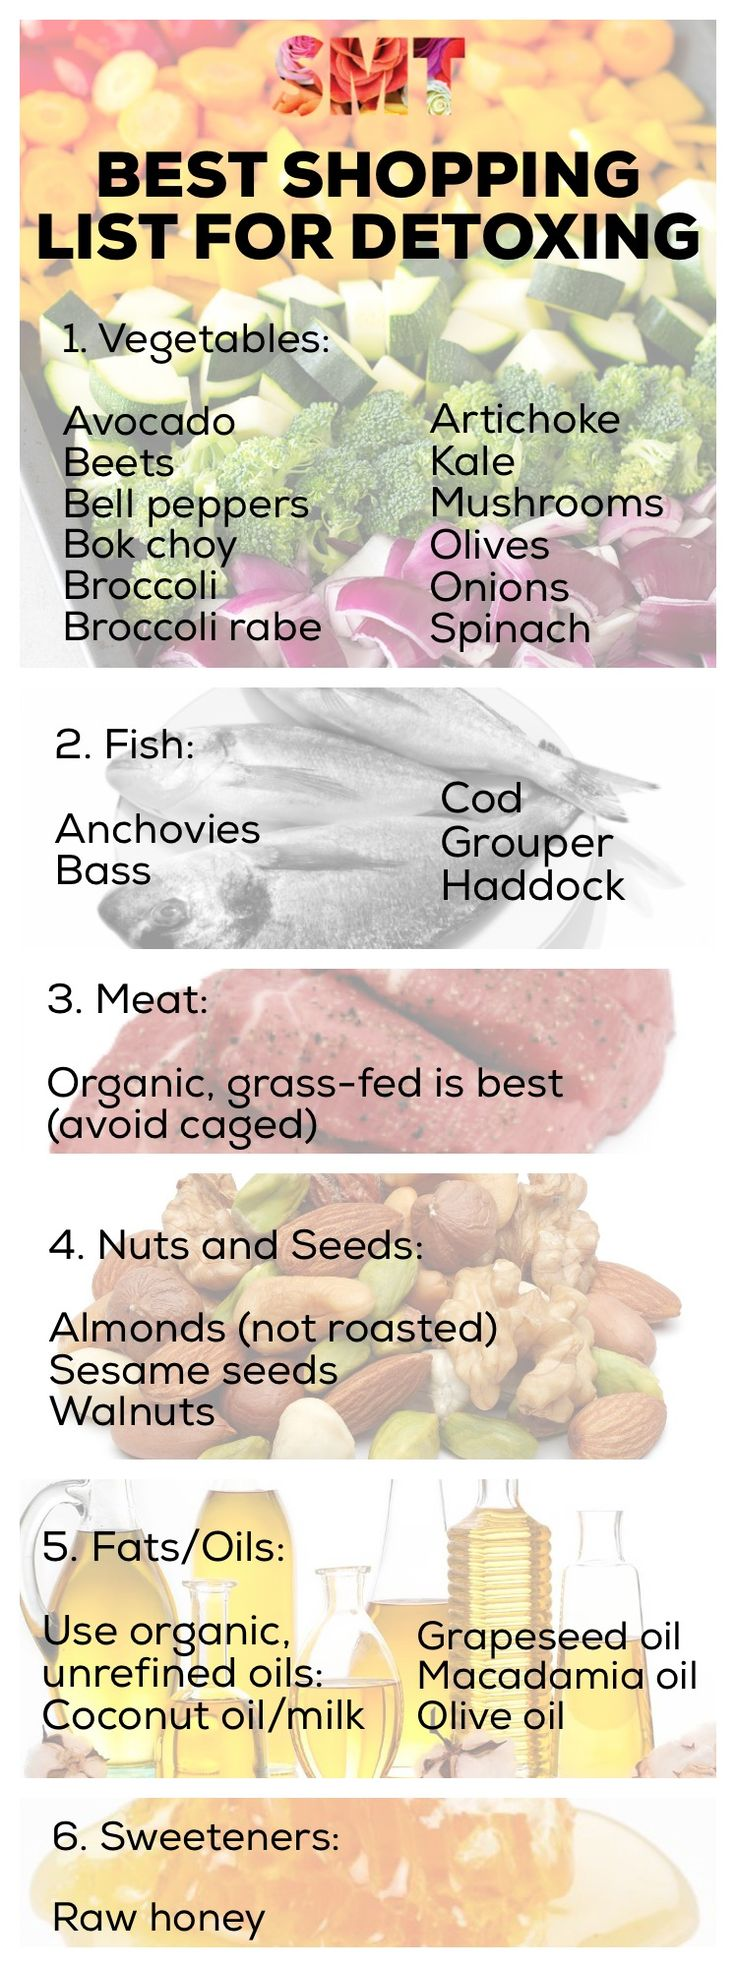 Wanting to be healthy but not sure what staple produce you should be buying? Here are some wonderful additions you may add to your shopping list next time you are completing a SkinnyMe Teatox or the SkinnyMe Detox Programs! The trick is to include a wide variety of meats, vegetables, grains and also avoid highly processed foods and trans fats! // Some of our favourites are listed below and are full of flavour and nutrition: www.skinnymetea.com.au